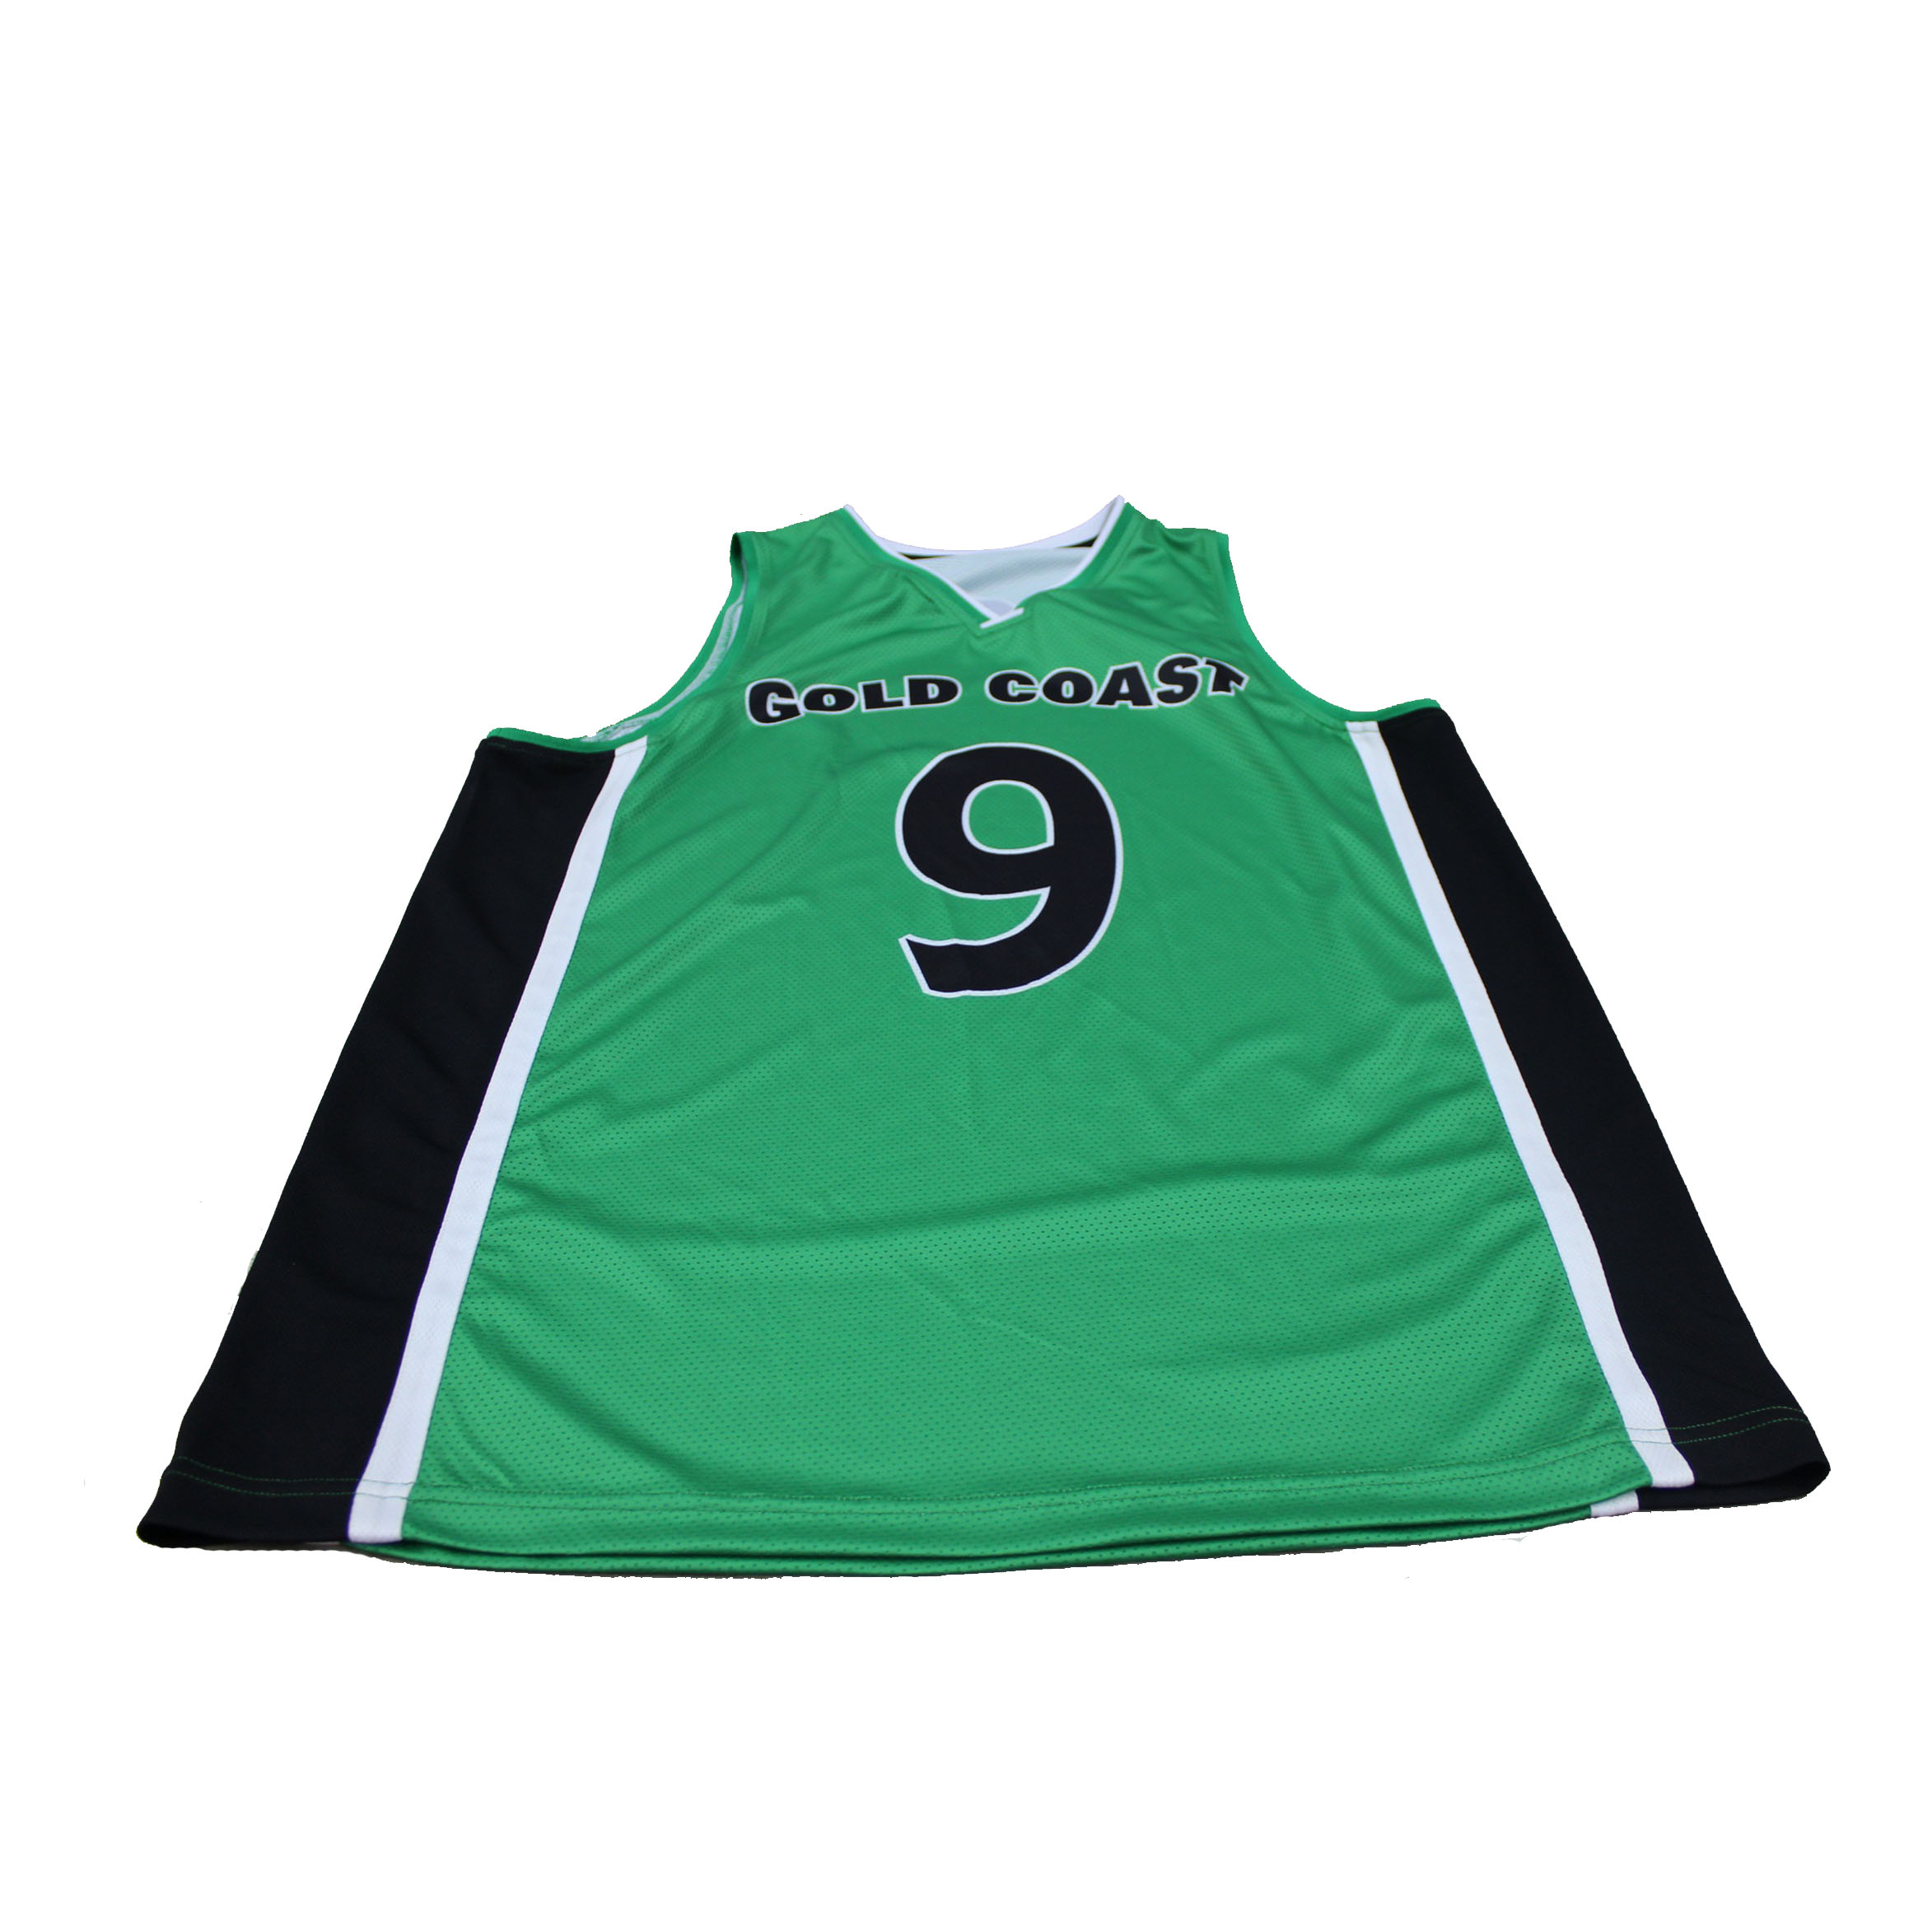 220a9f80fcc China Green Breathable Basketball Jersey, China Green Breathable Basketball  Jersey Manufacturers and Suppliers on Alibaba.com